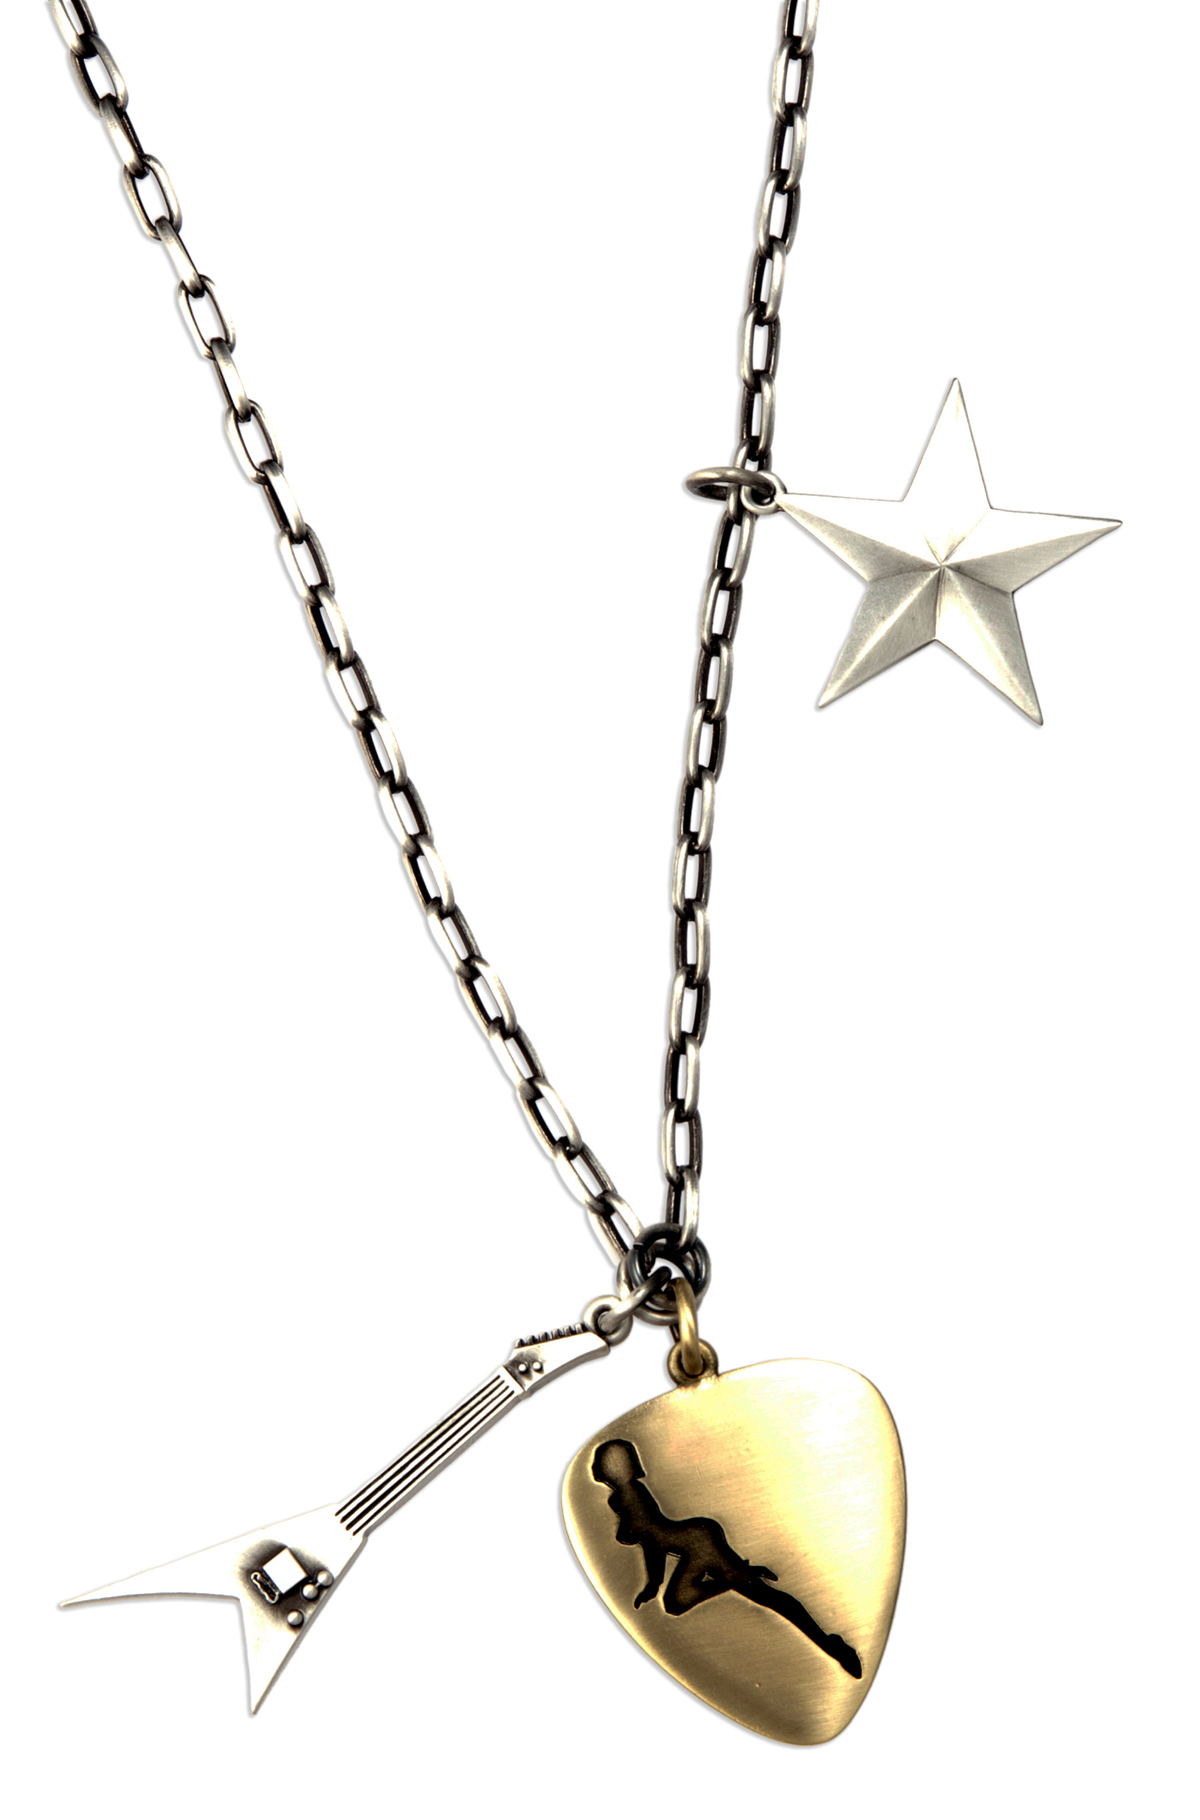 Prodigal Rockstar - Bico Australia - mens necklace pendants